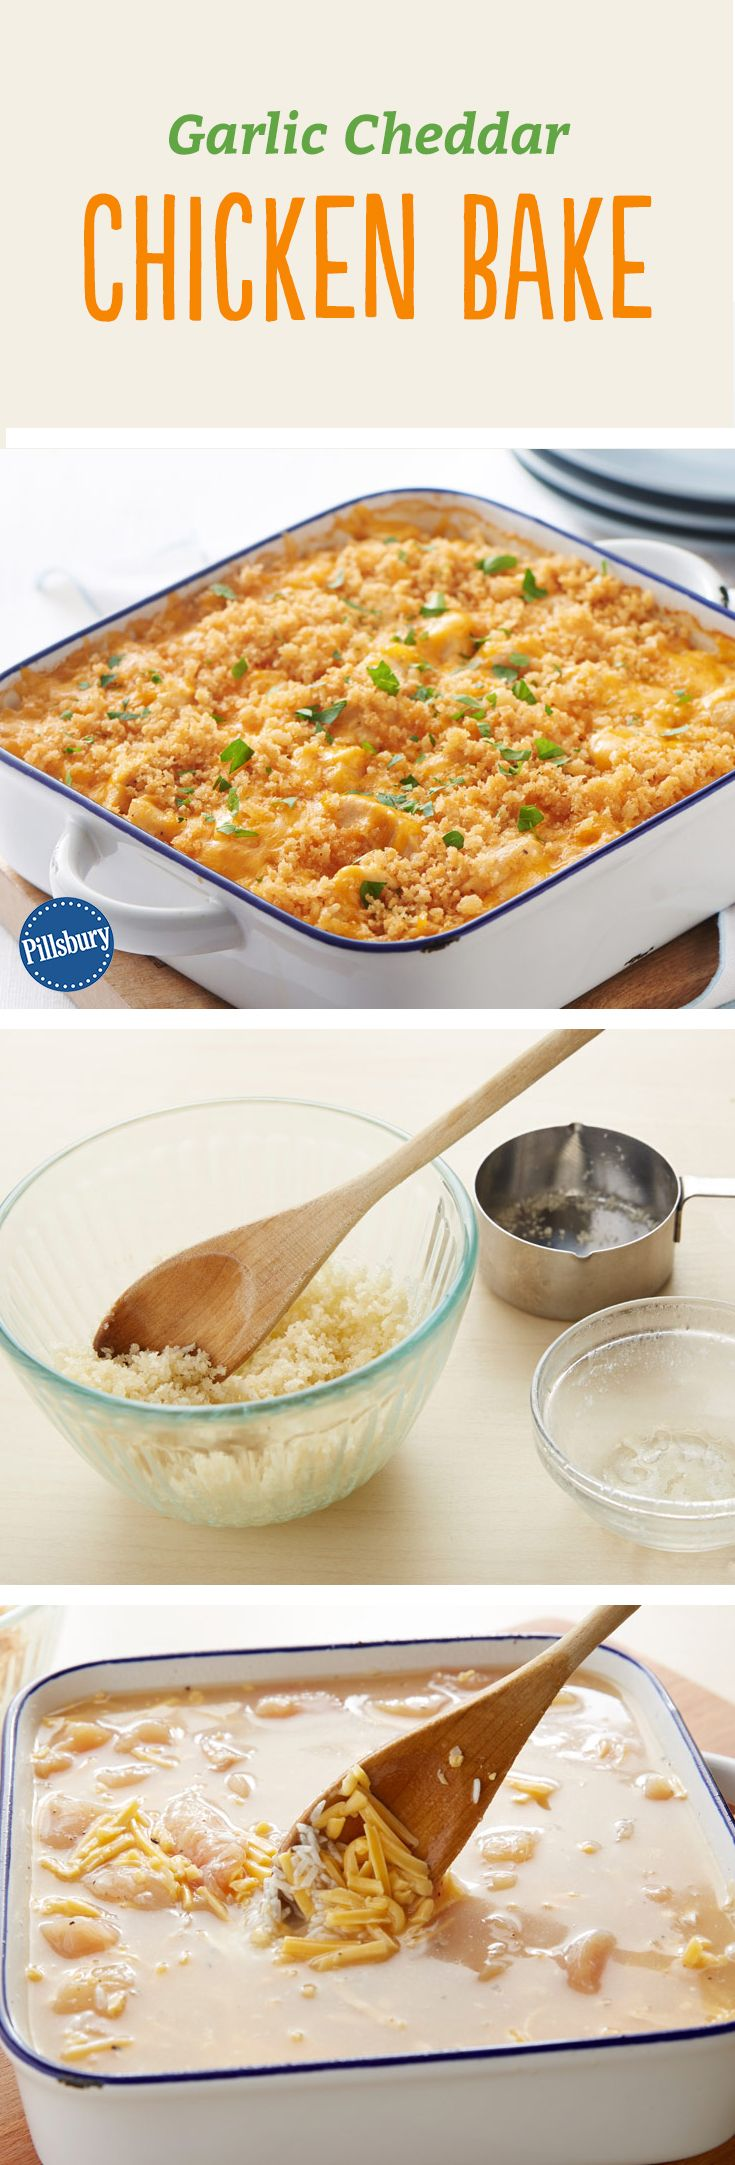 Break out your casserole dish! This easy and cheesy rice and chicken bake is sure to please any family.